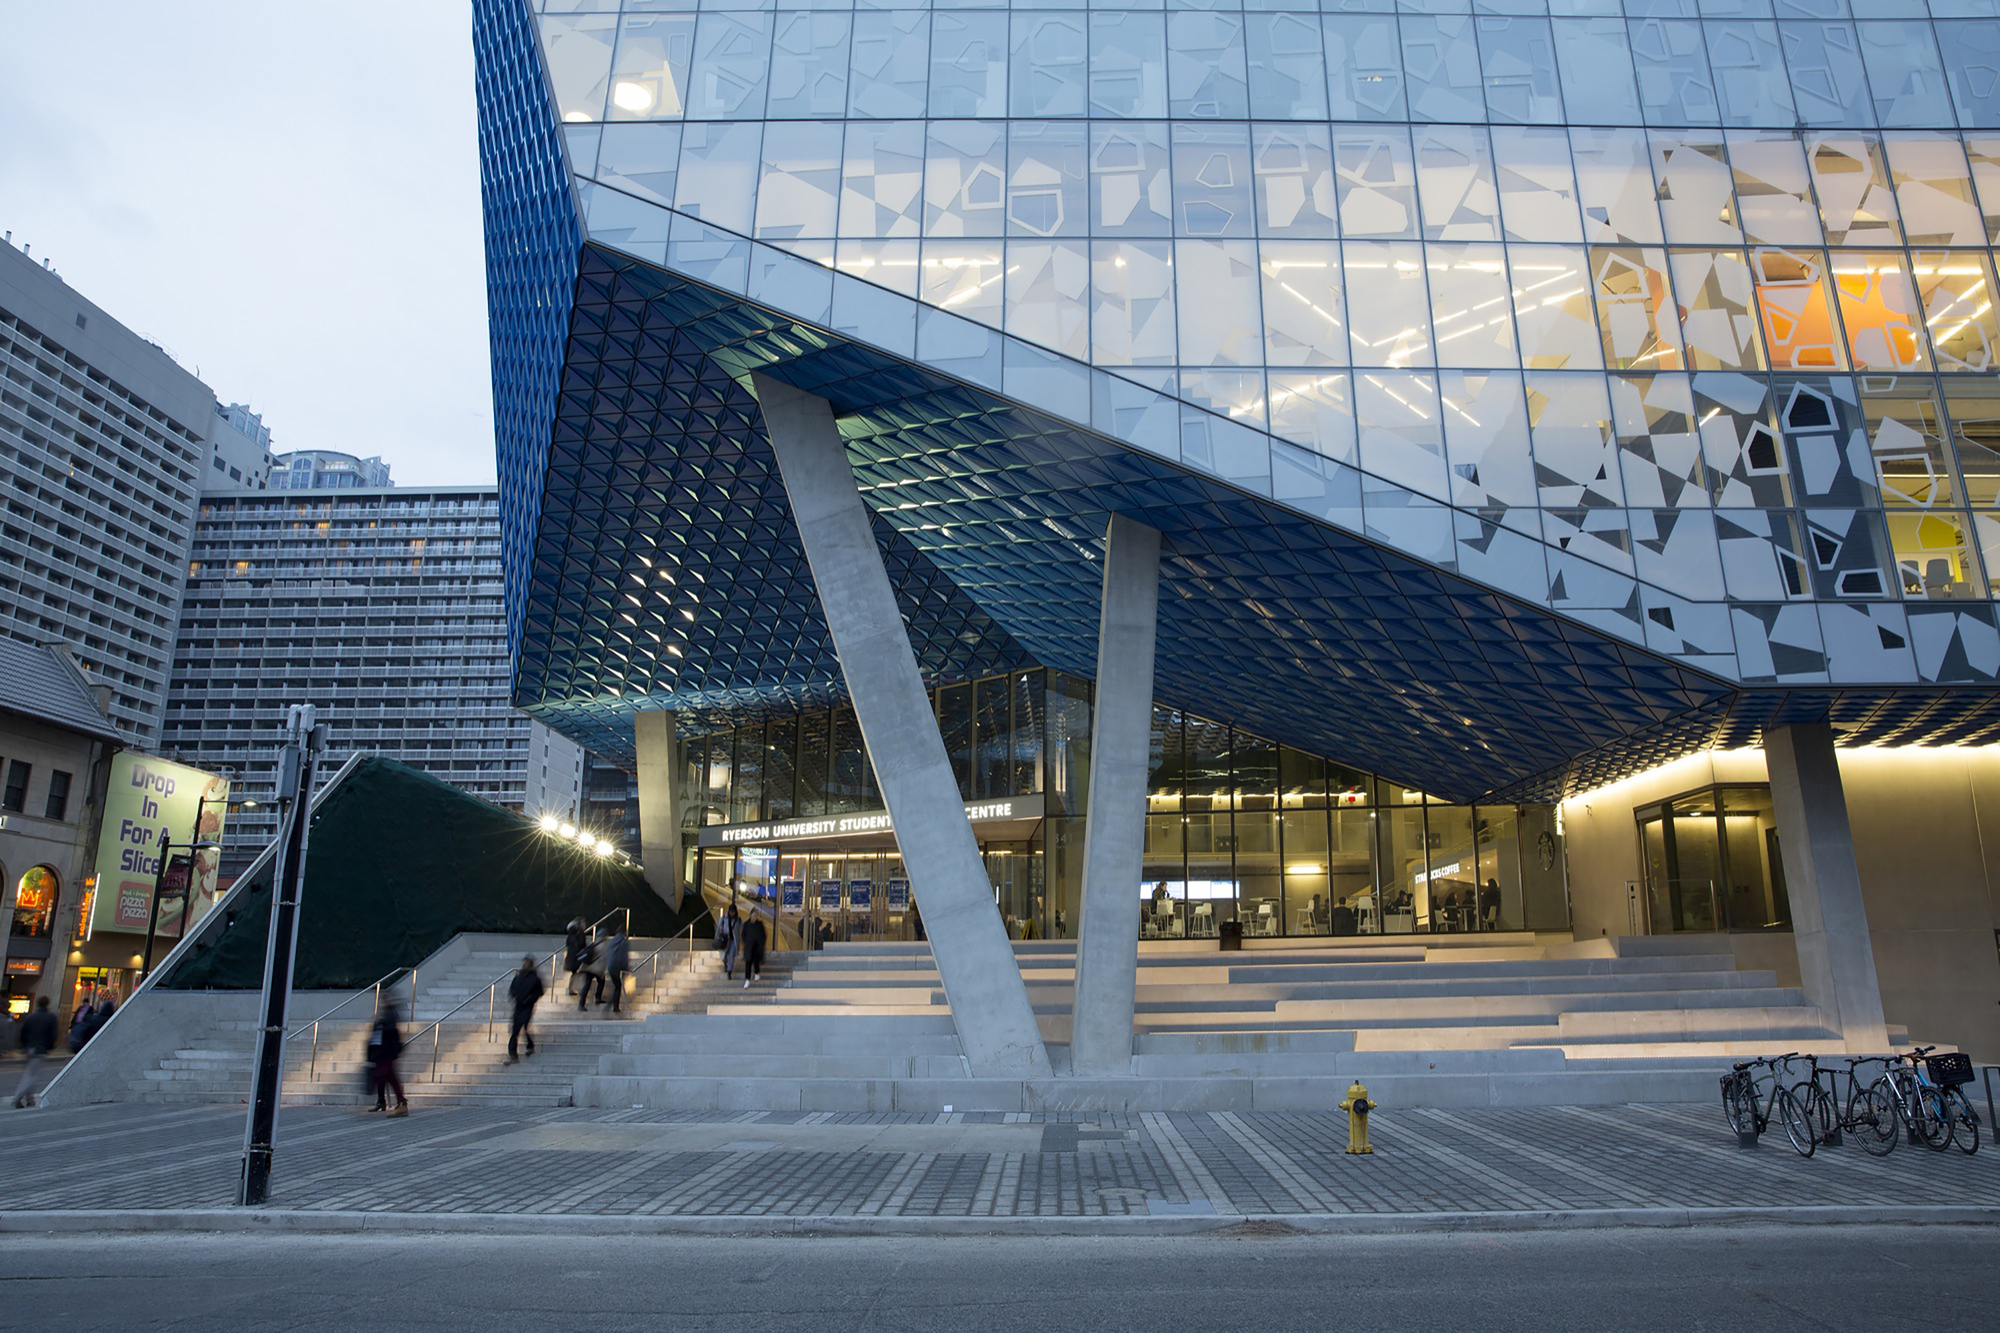 Fashion communication at ryerson university rankings and reviews Ryerson University (StudentsReview) - Comments, Reviews and